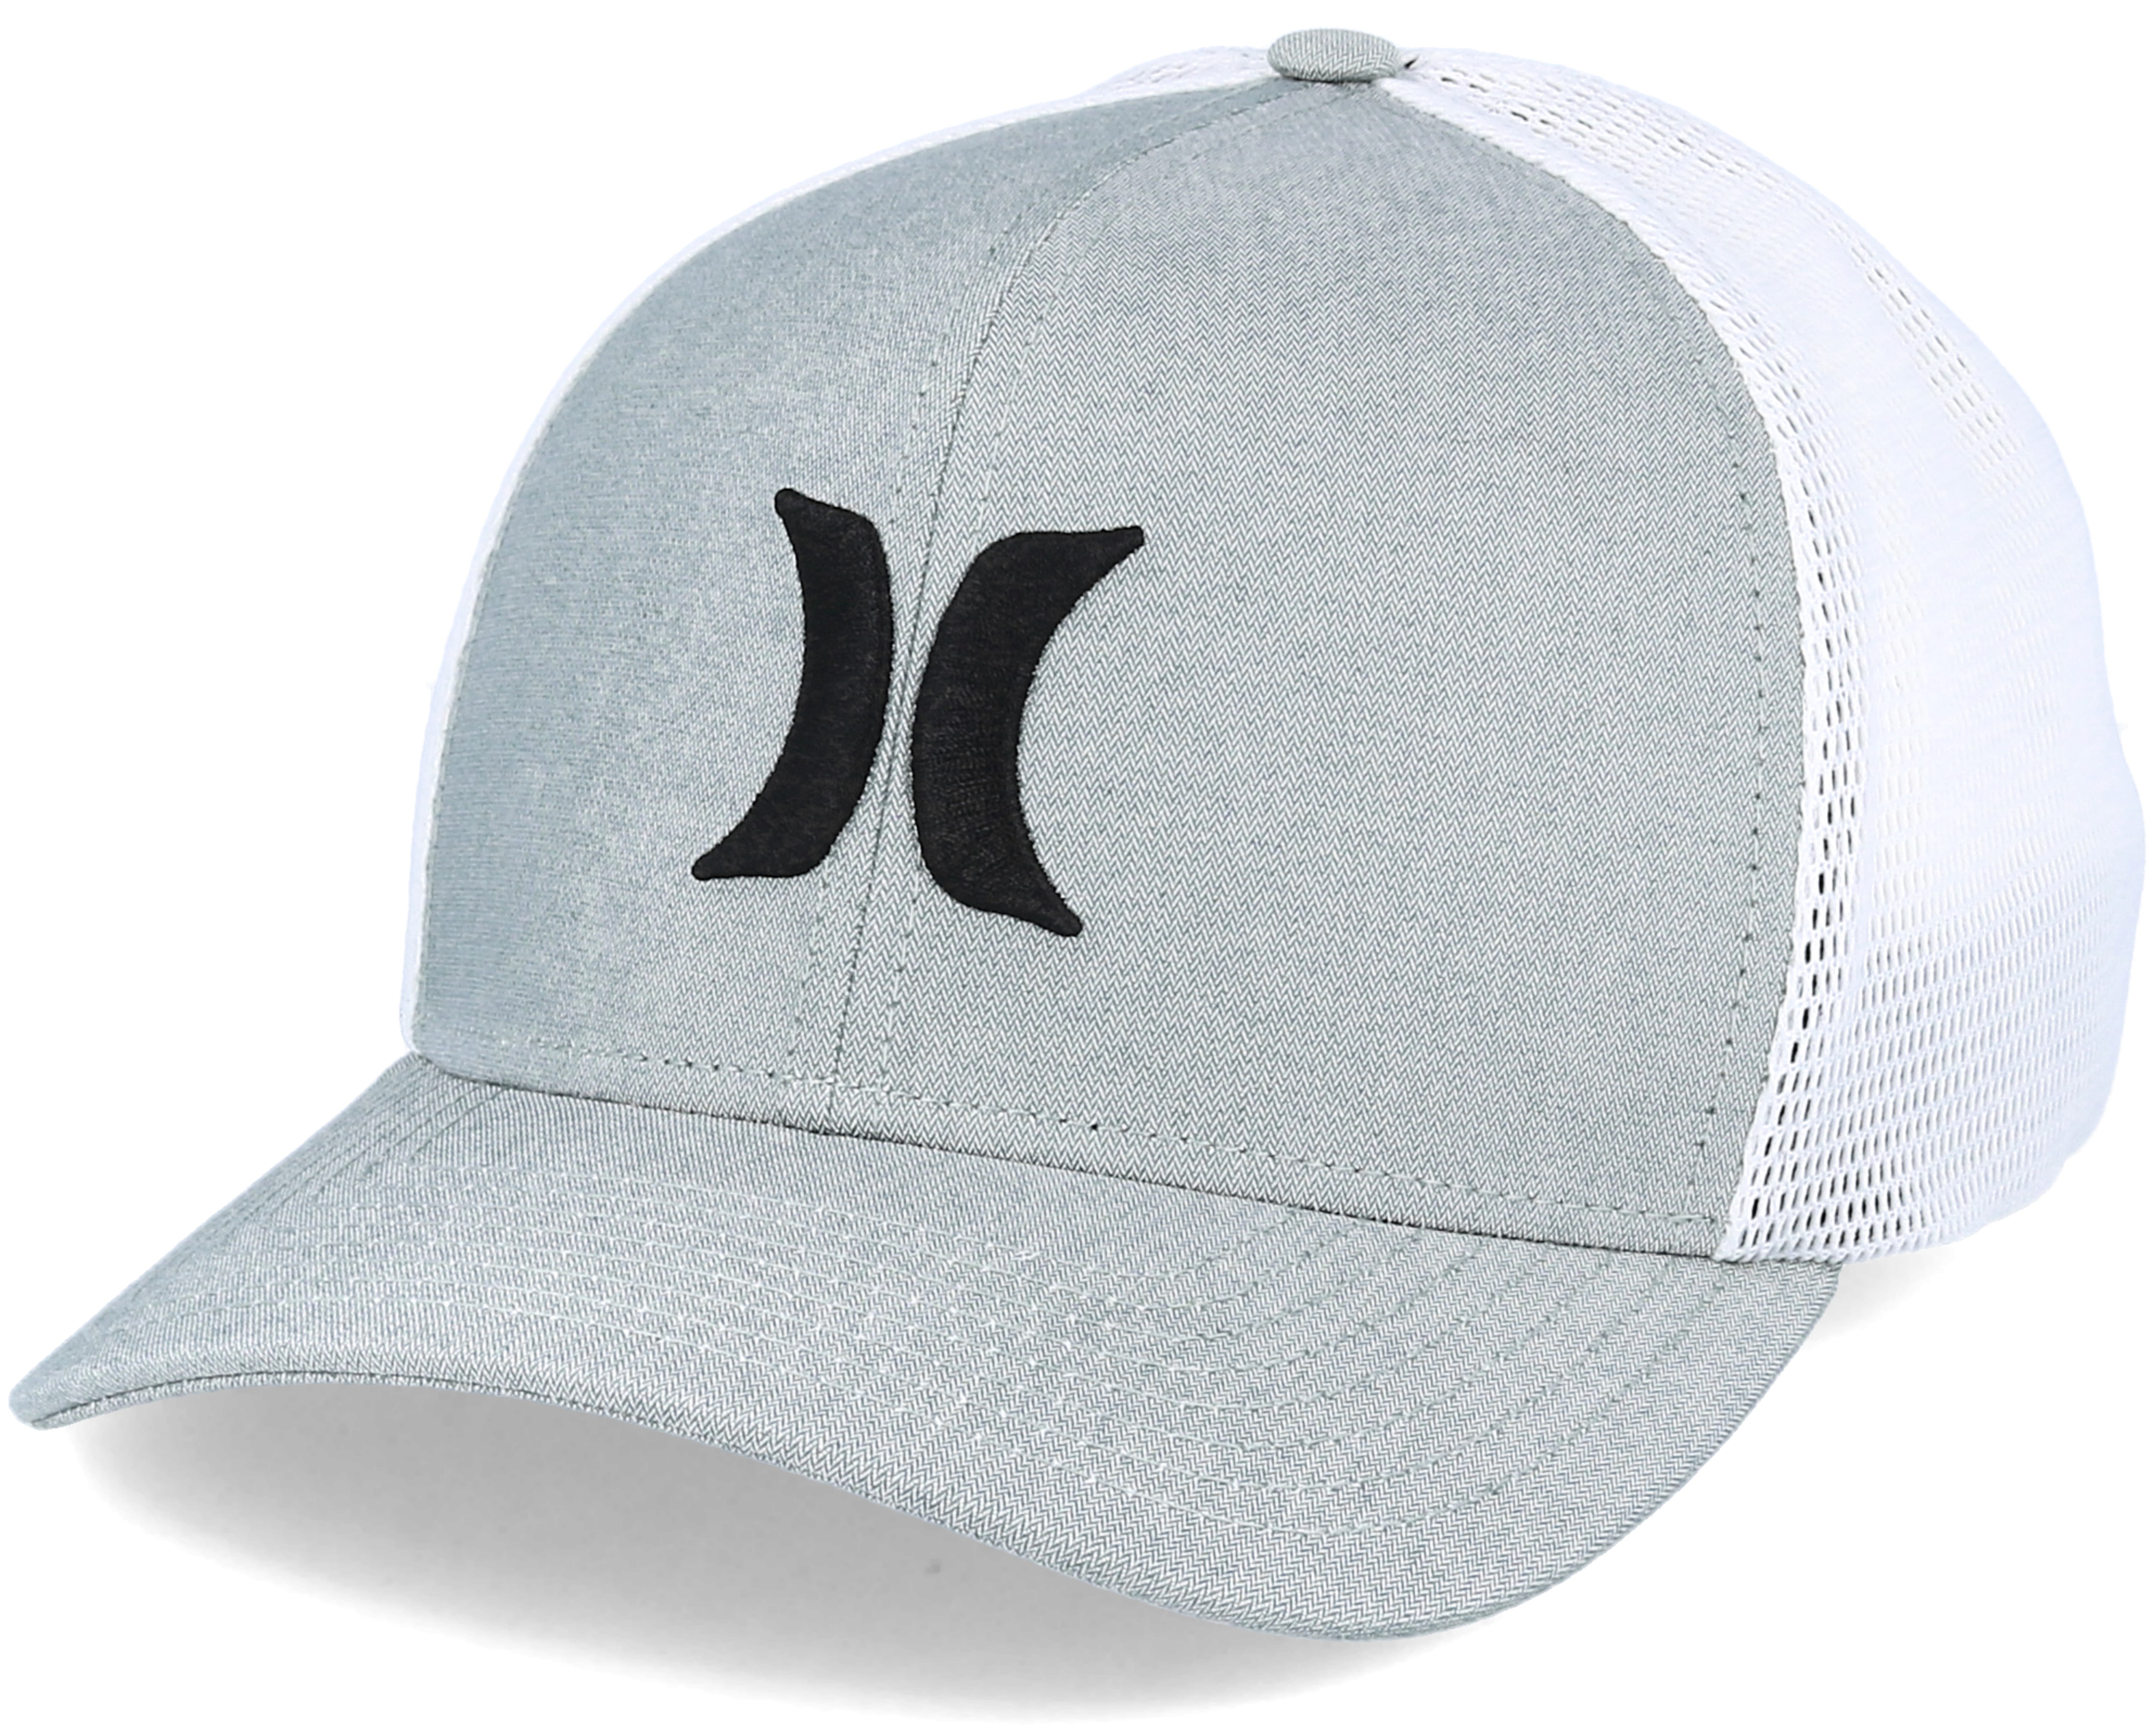 cheap for discount a7998 747a0 ... coupon for one textures grey flexfit hurley caps hatstore c2b2d 275ad